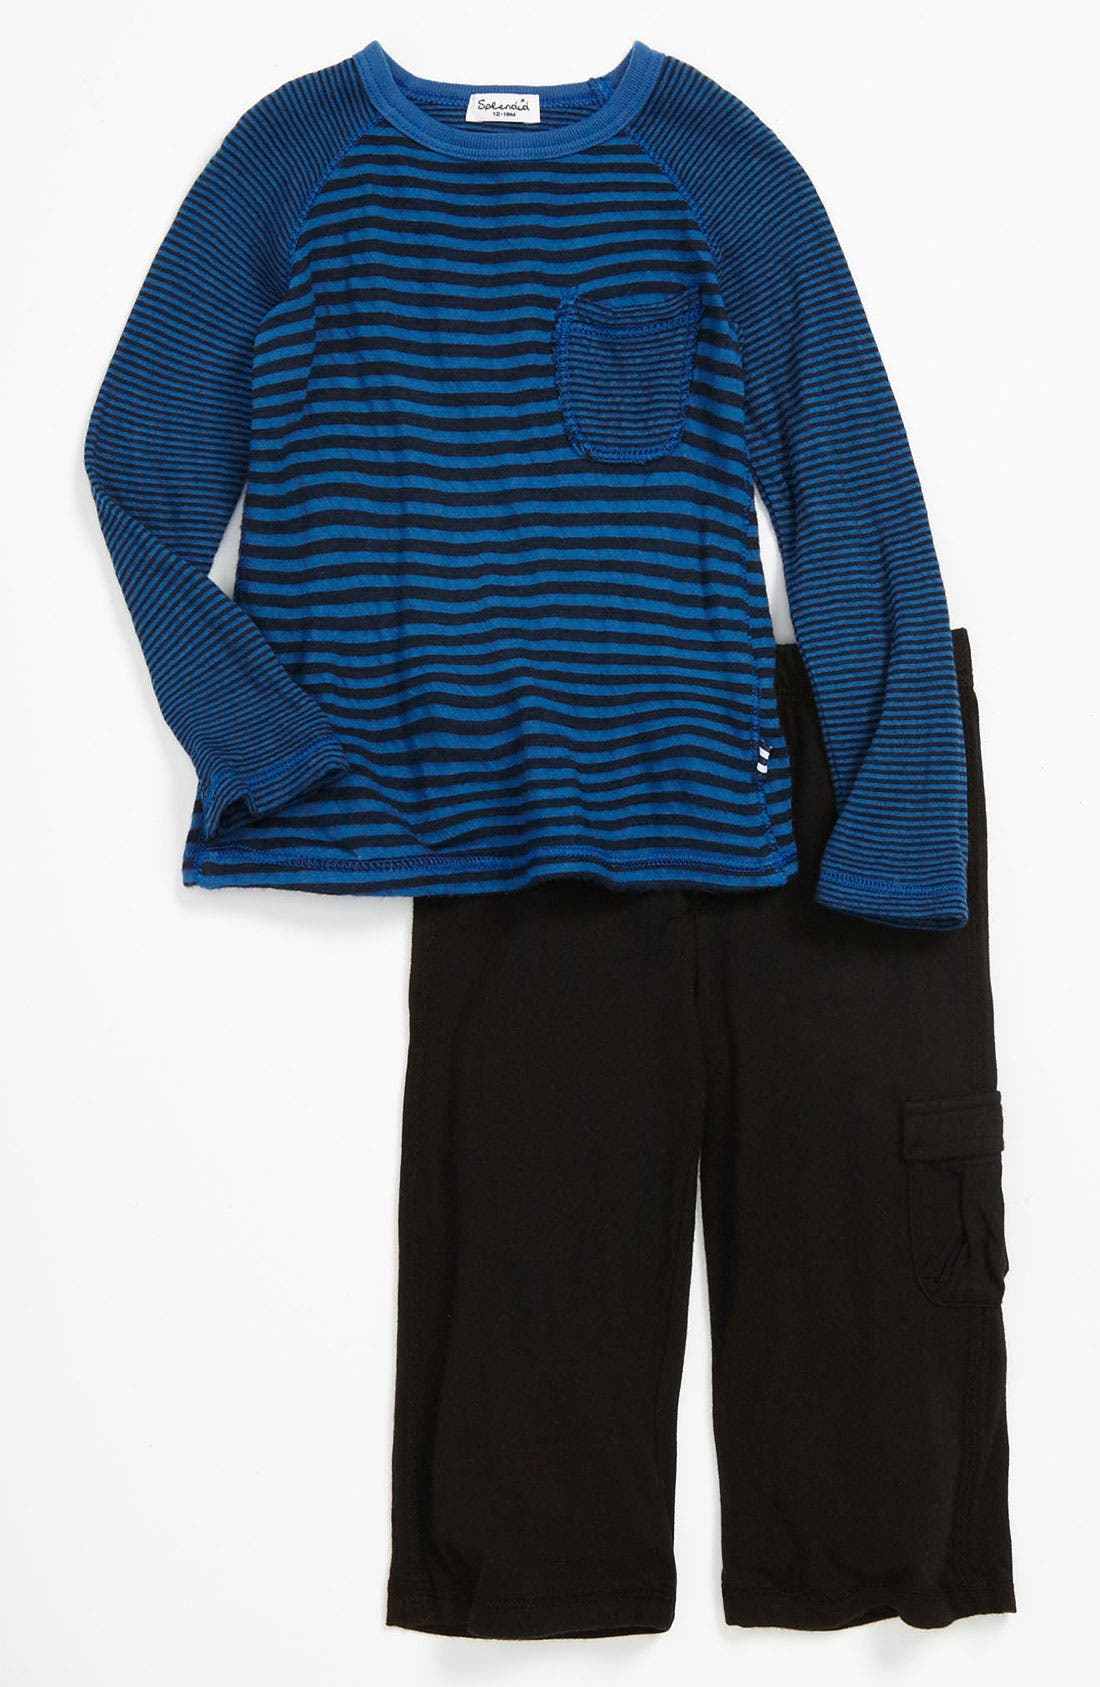 Main Image - Splendid Stripe Top & Pants (Infant)